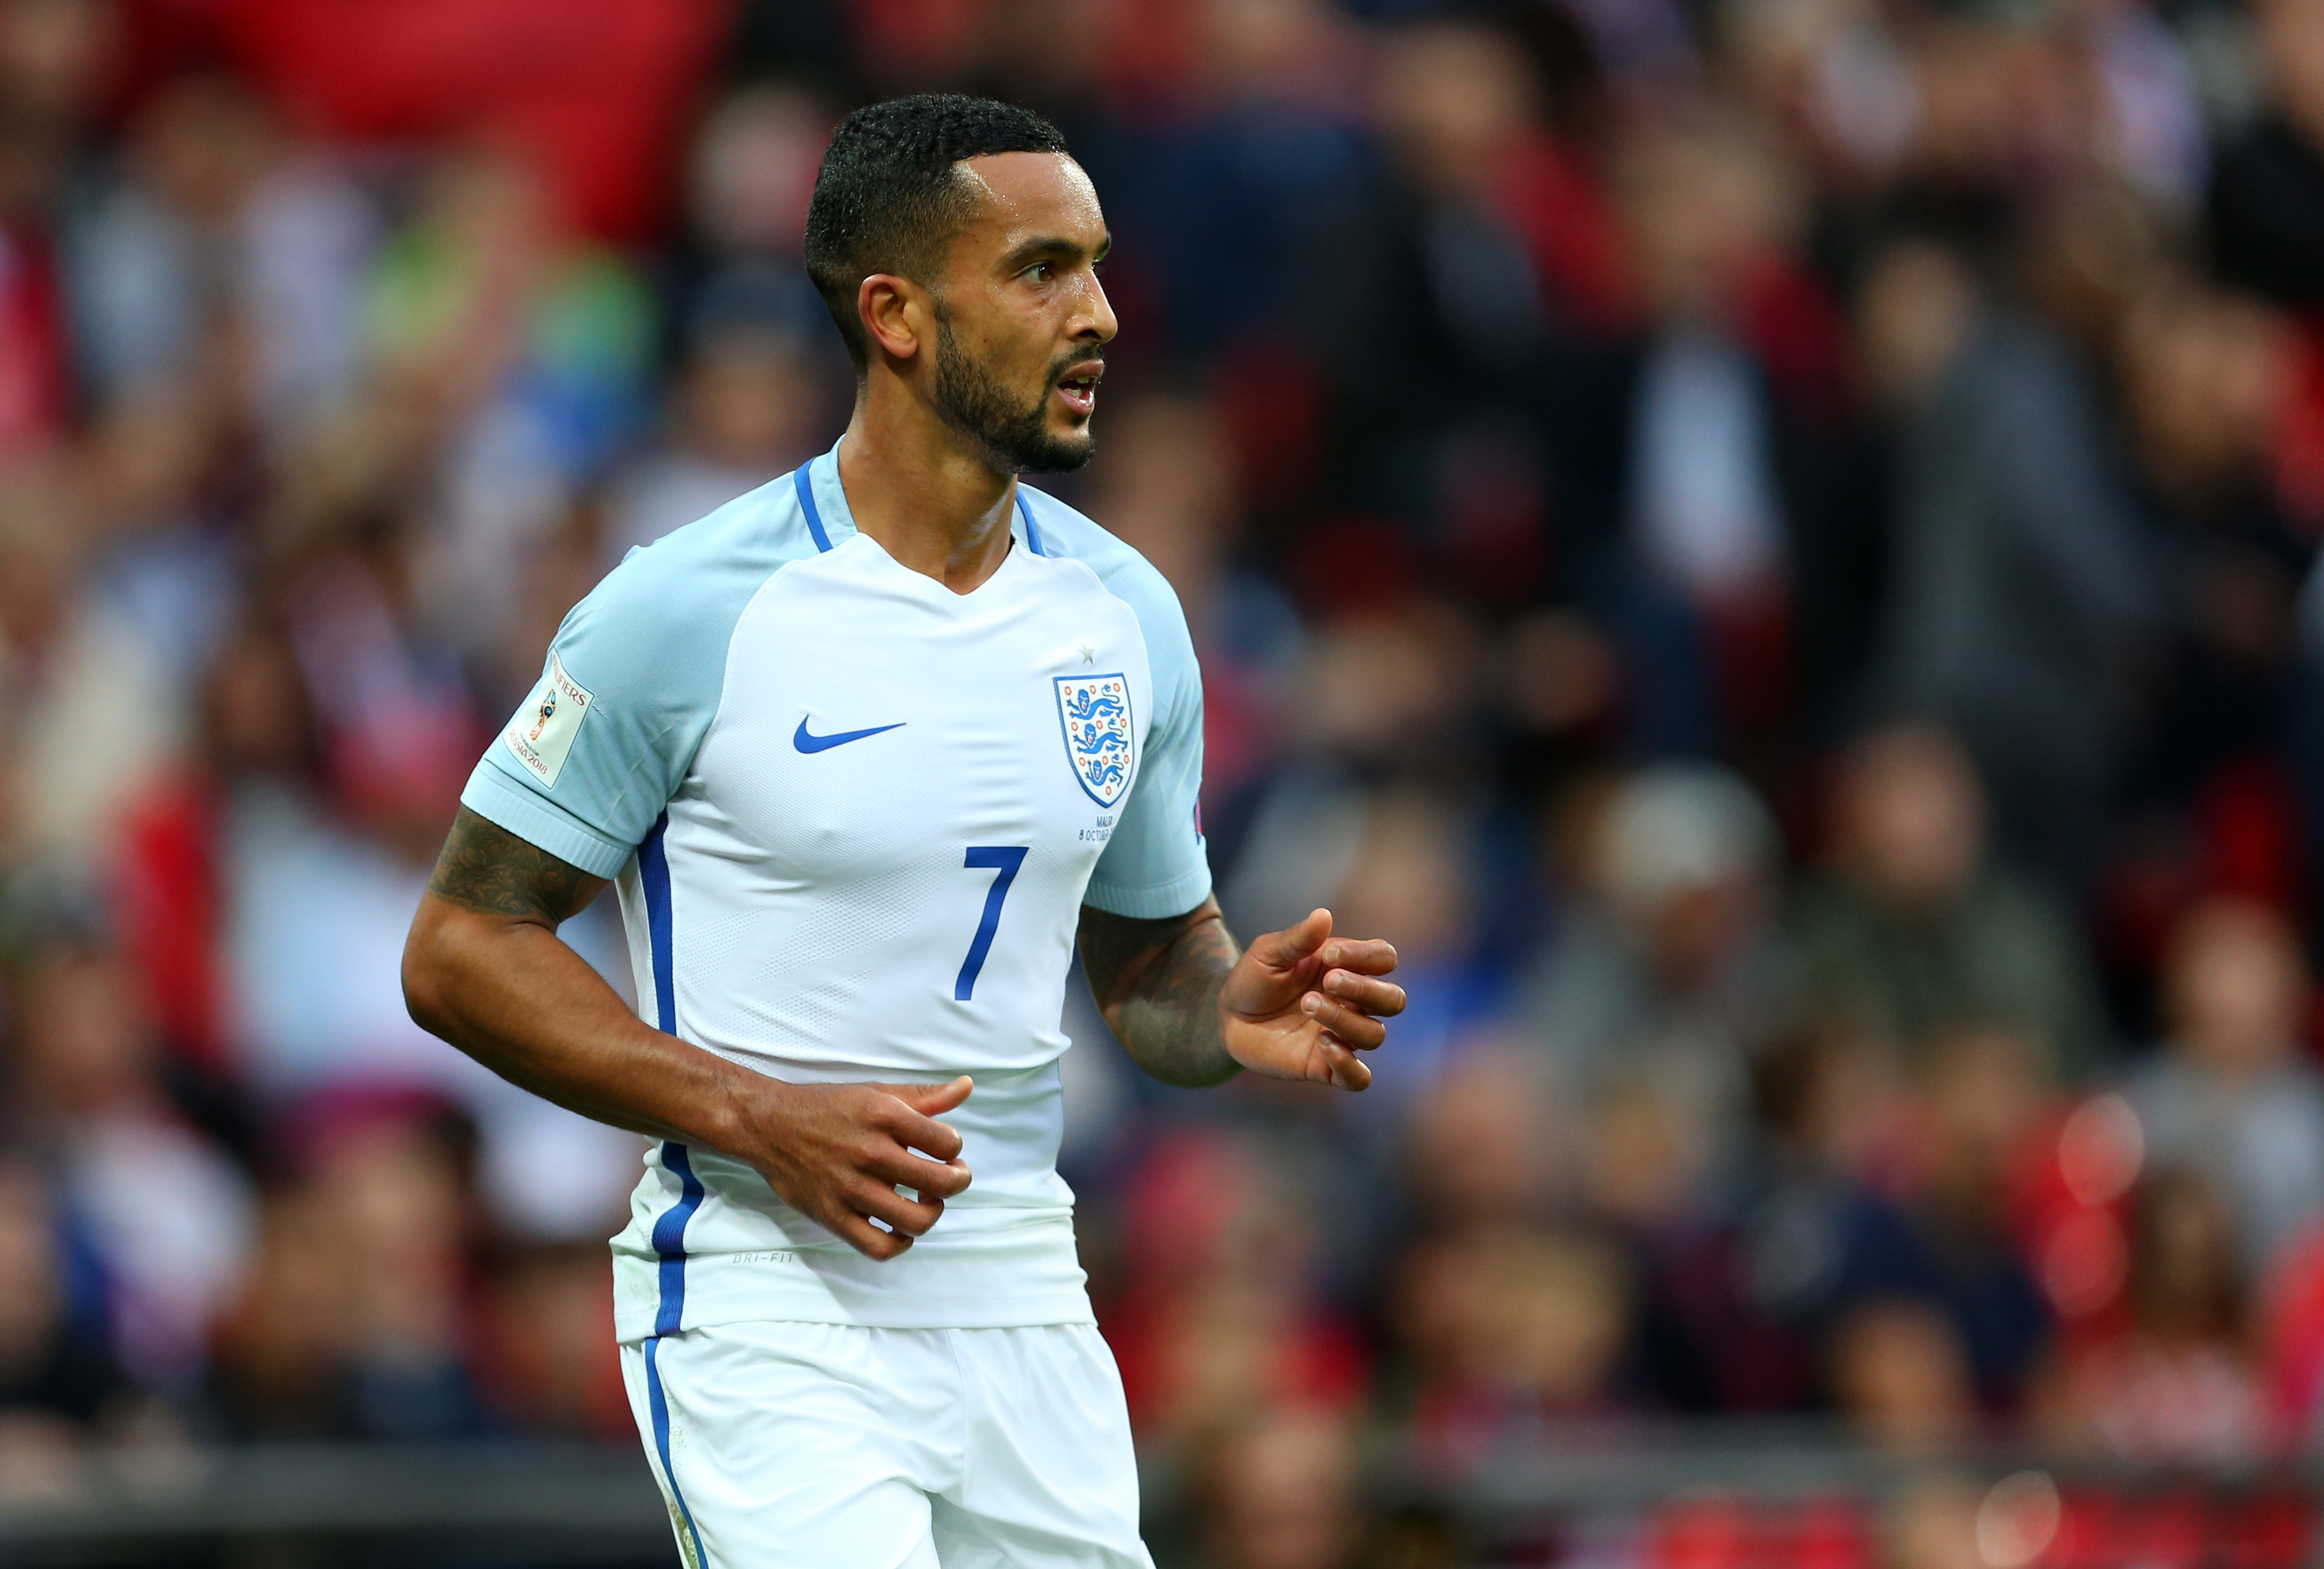 EXPOSED: Walcott loses in sprint race with Chelsea's Azpilicueta